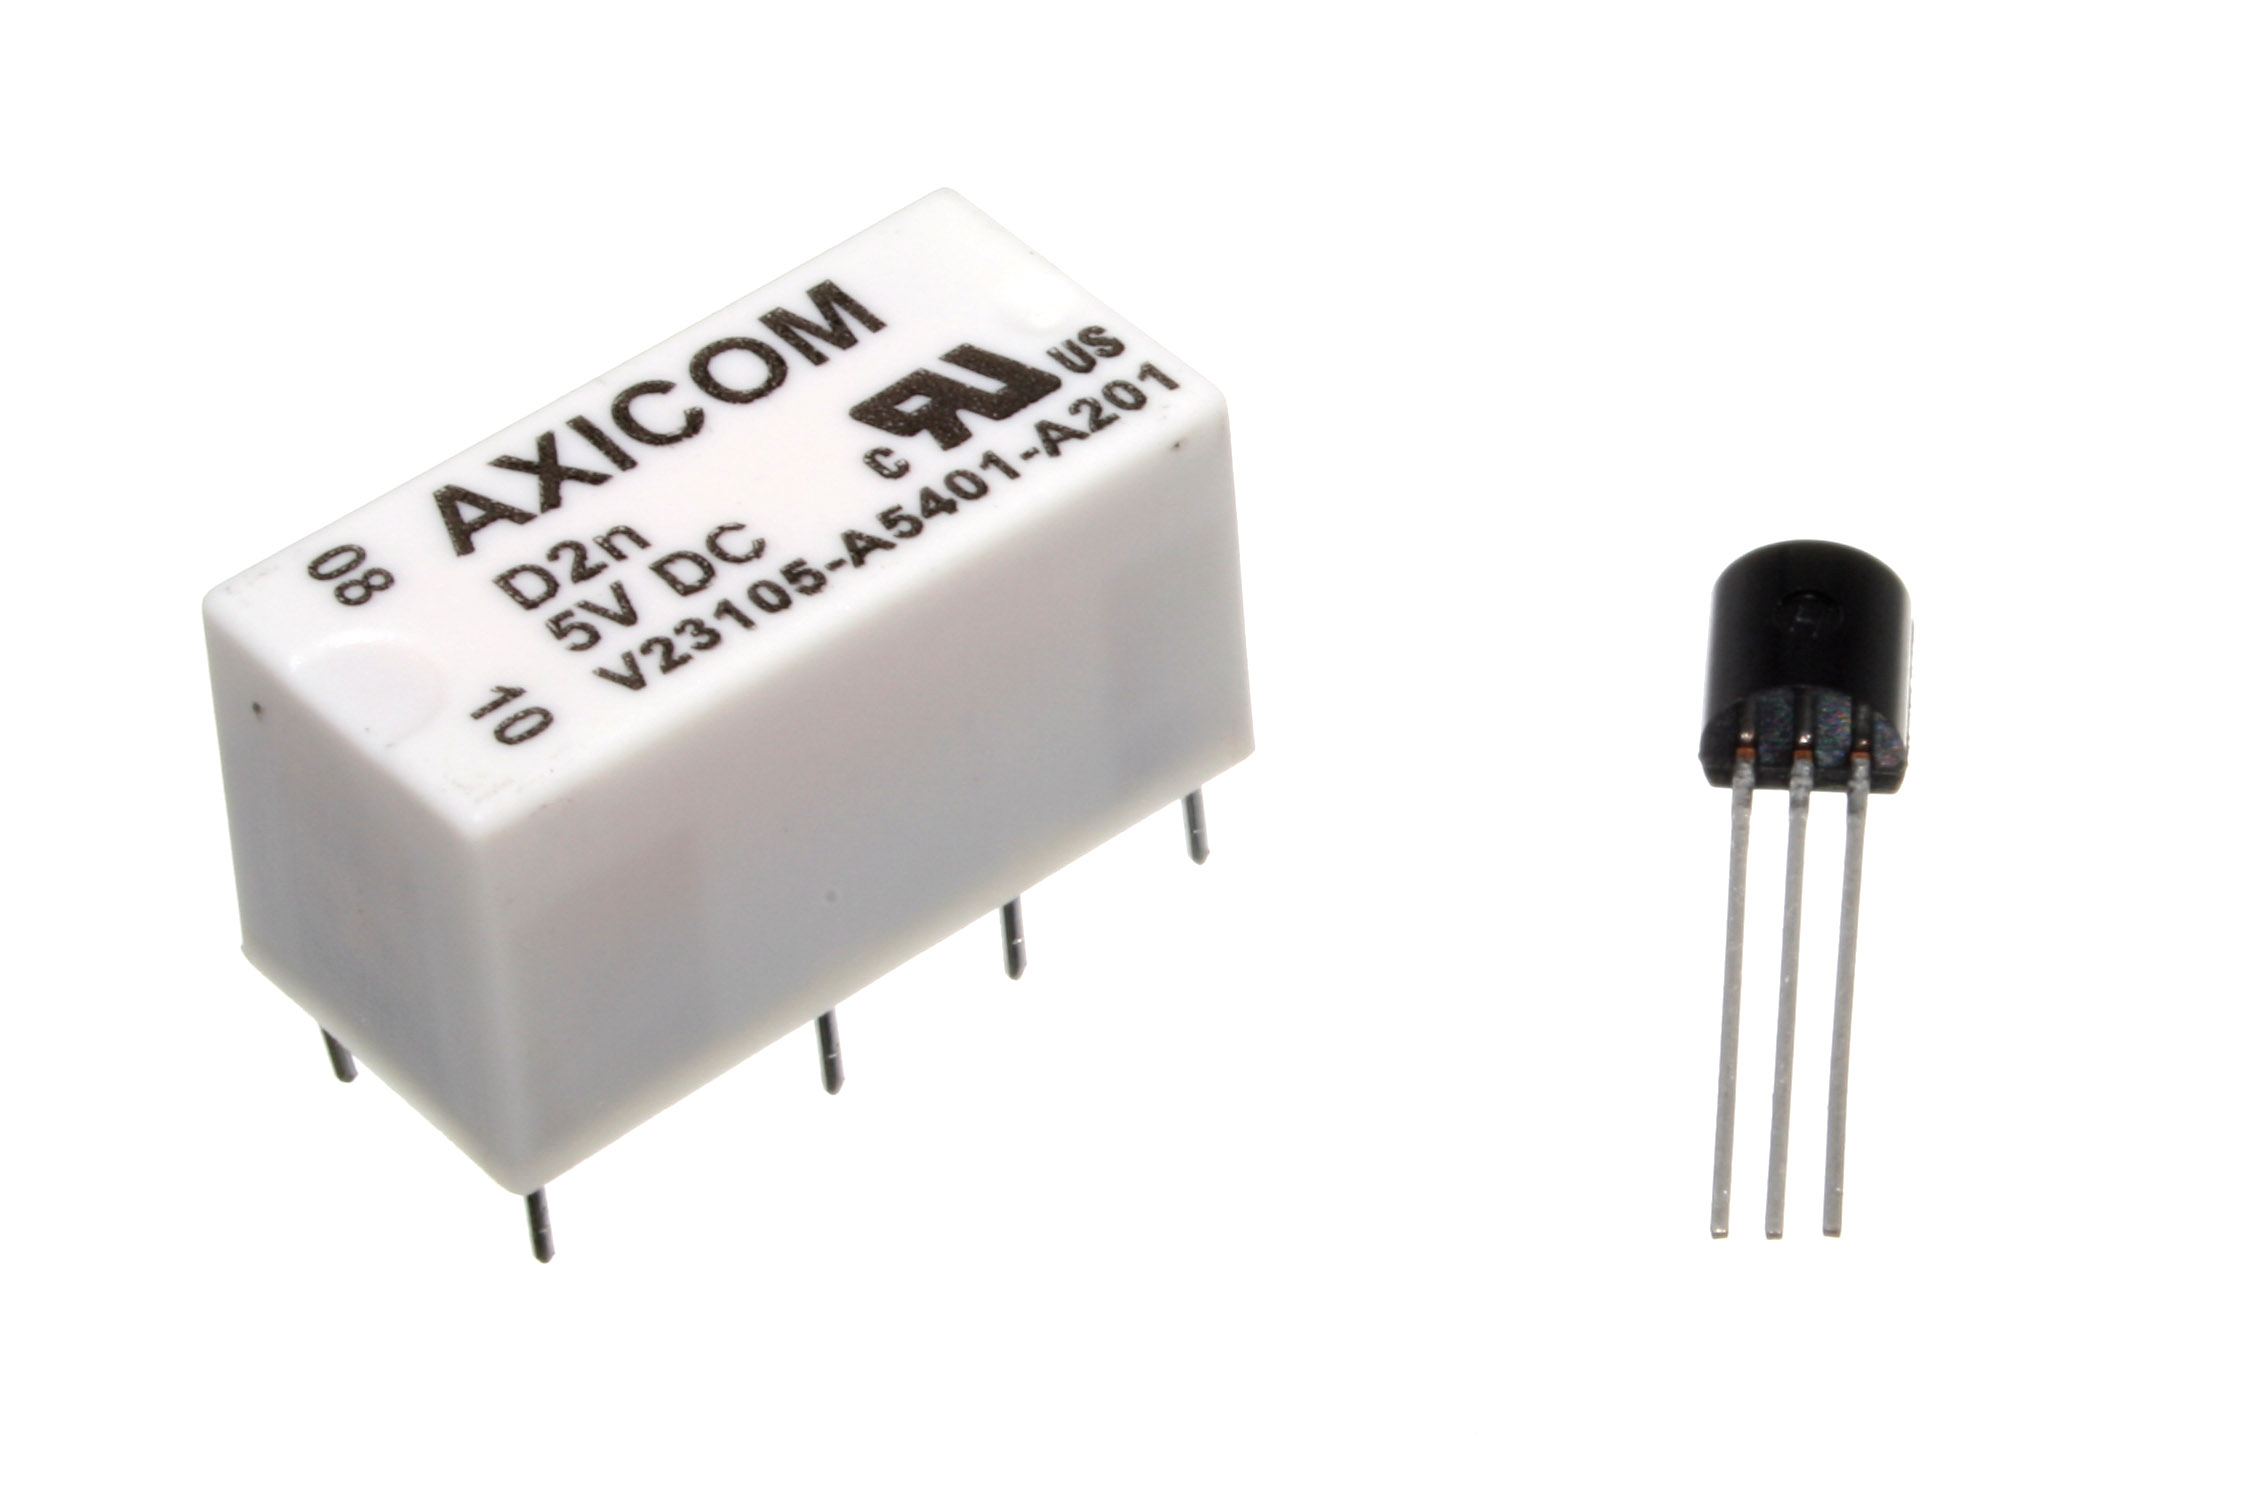 file small dip dpdt relay and driving transistor jpg